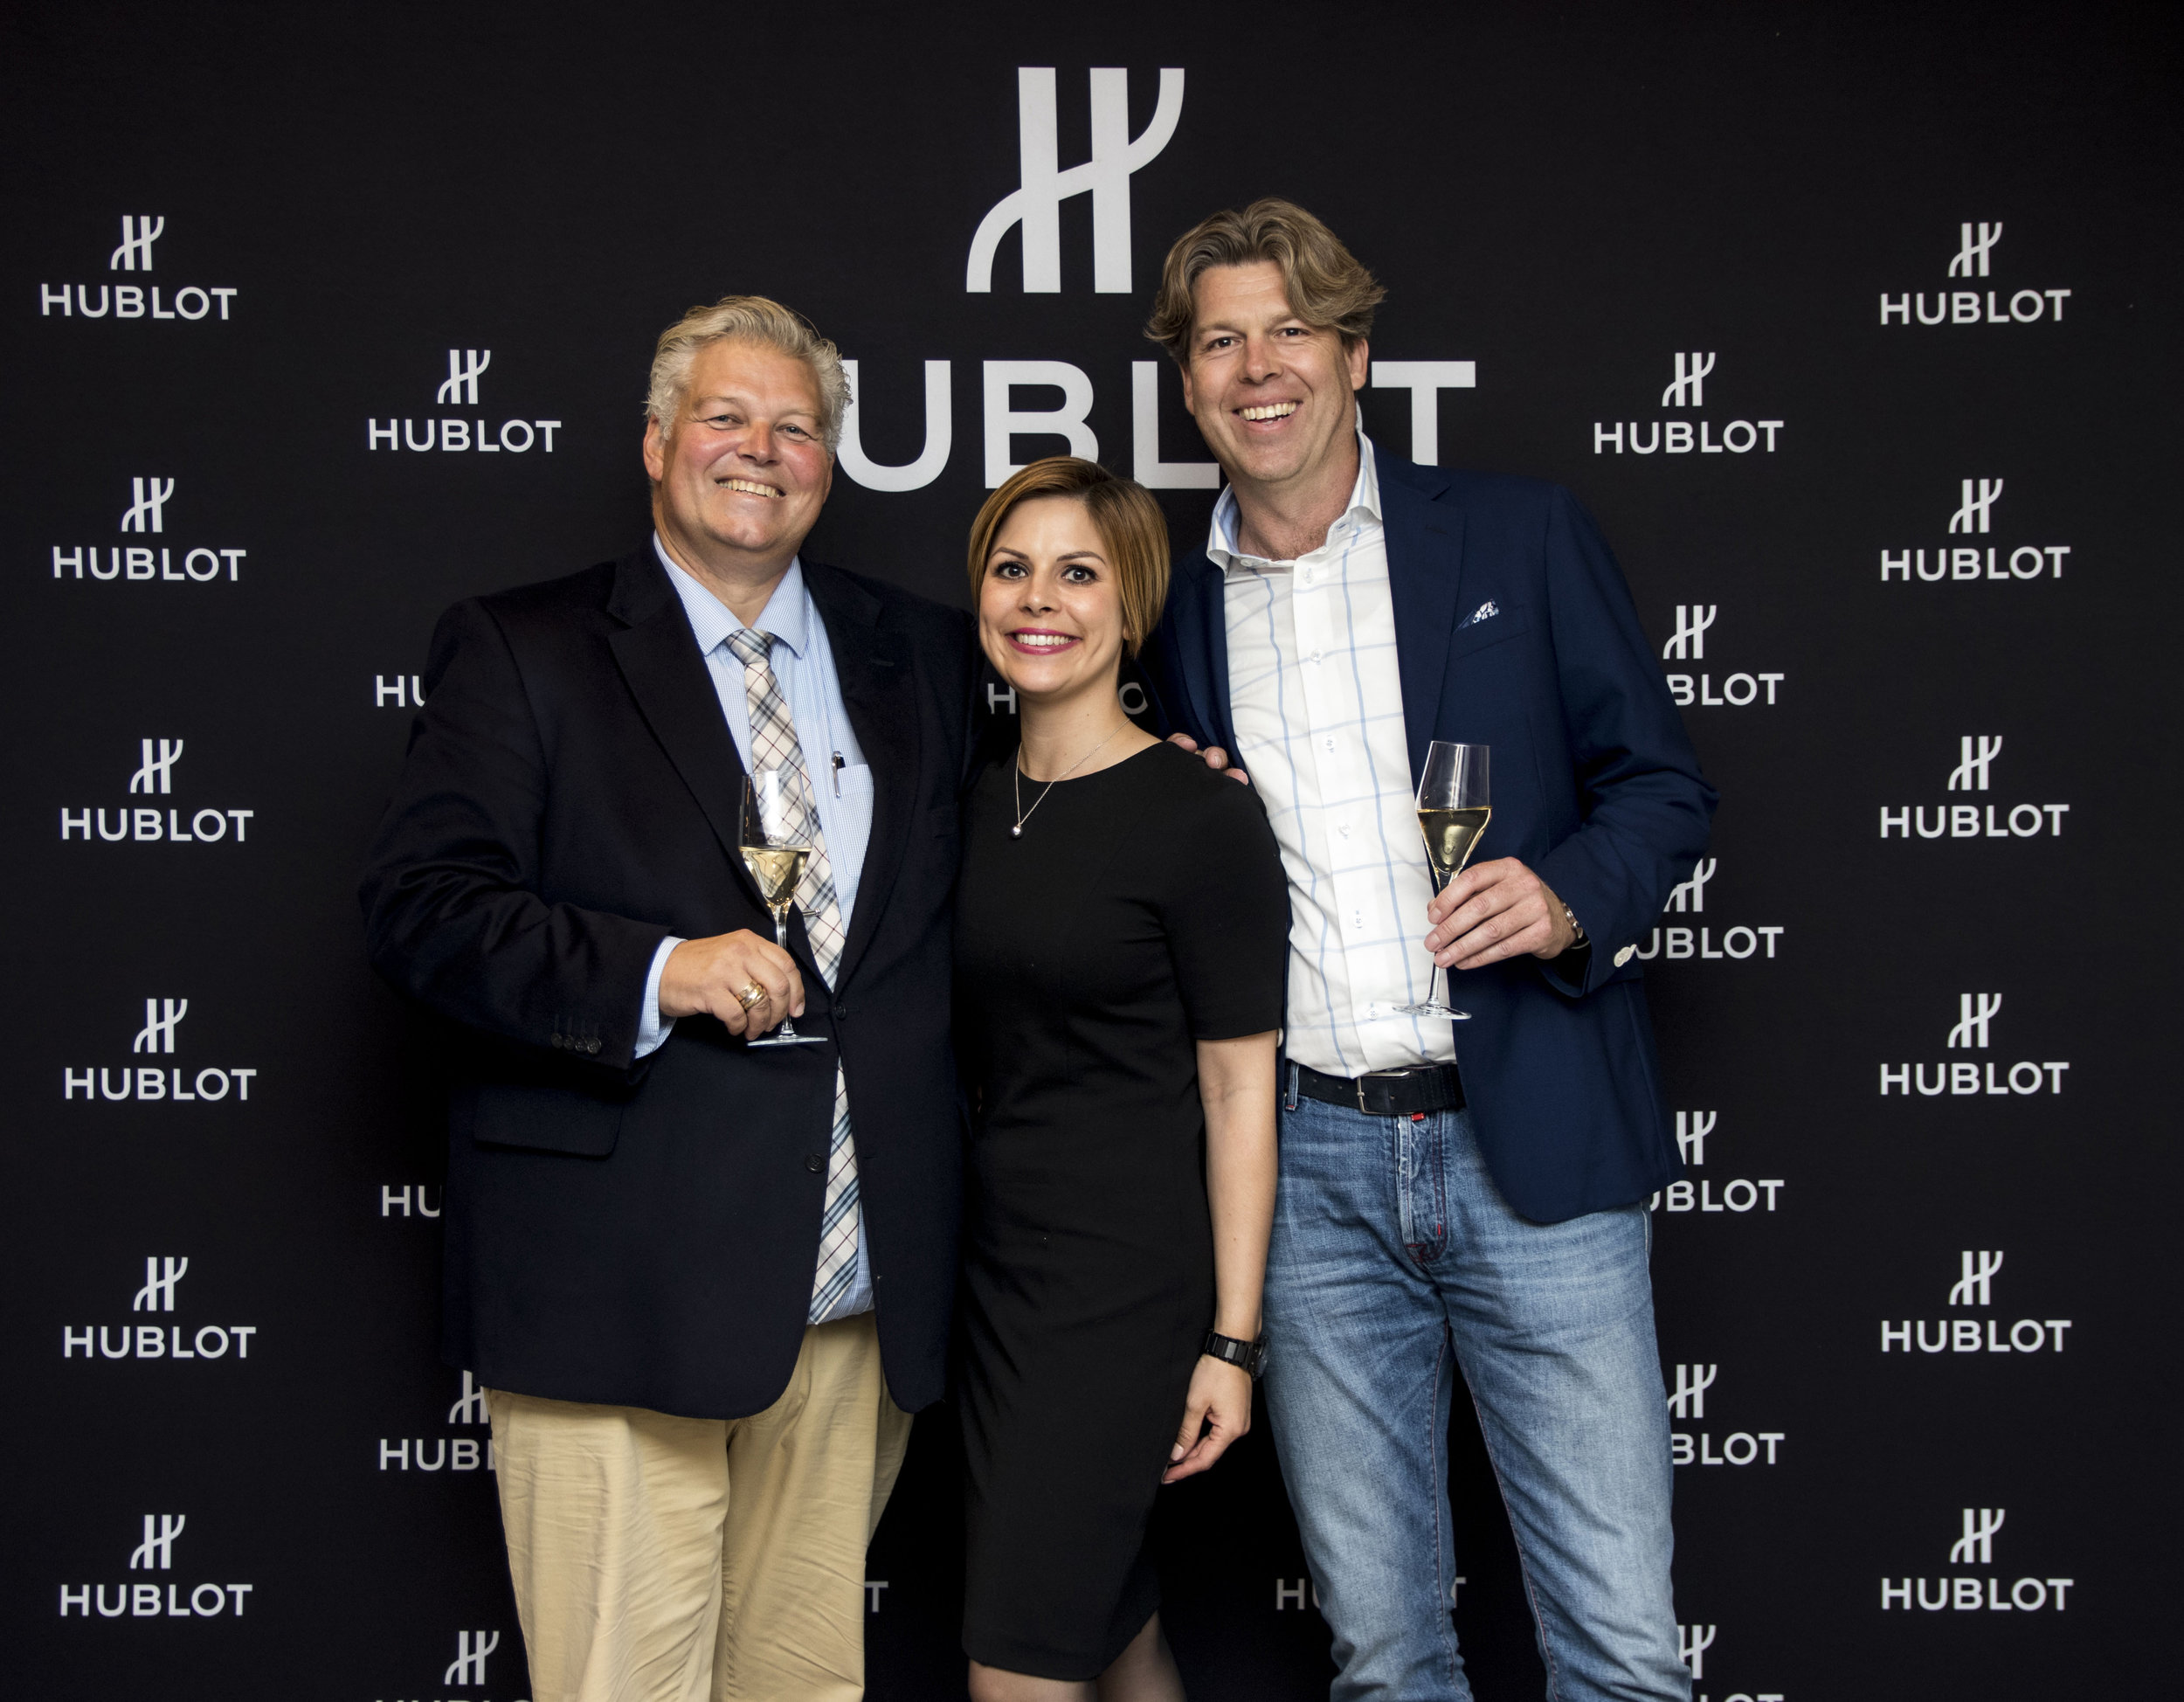 luxurygroupswitzerland_marcferrero_hublot_web005.jpg